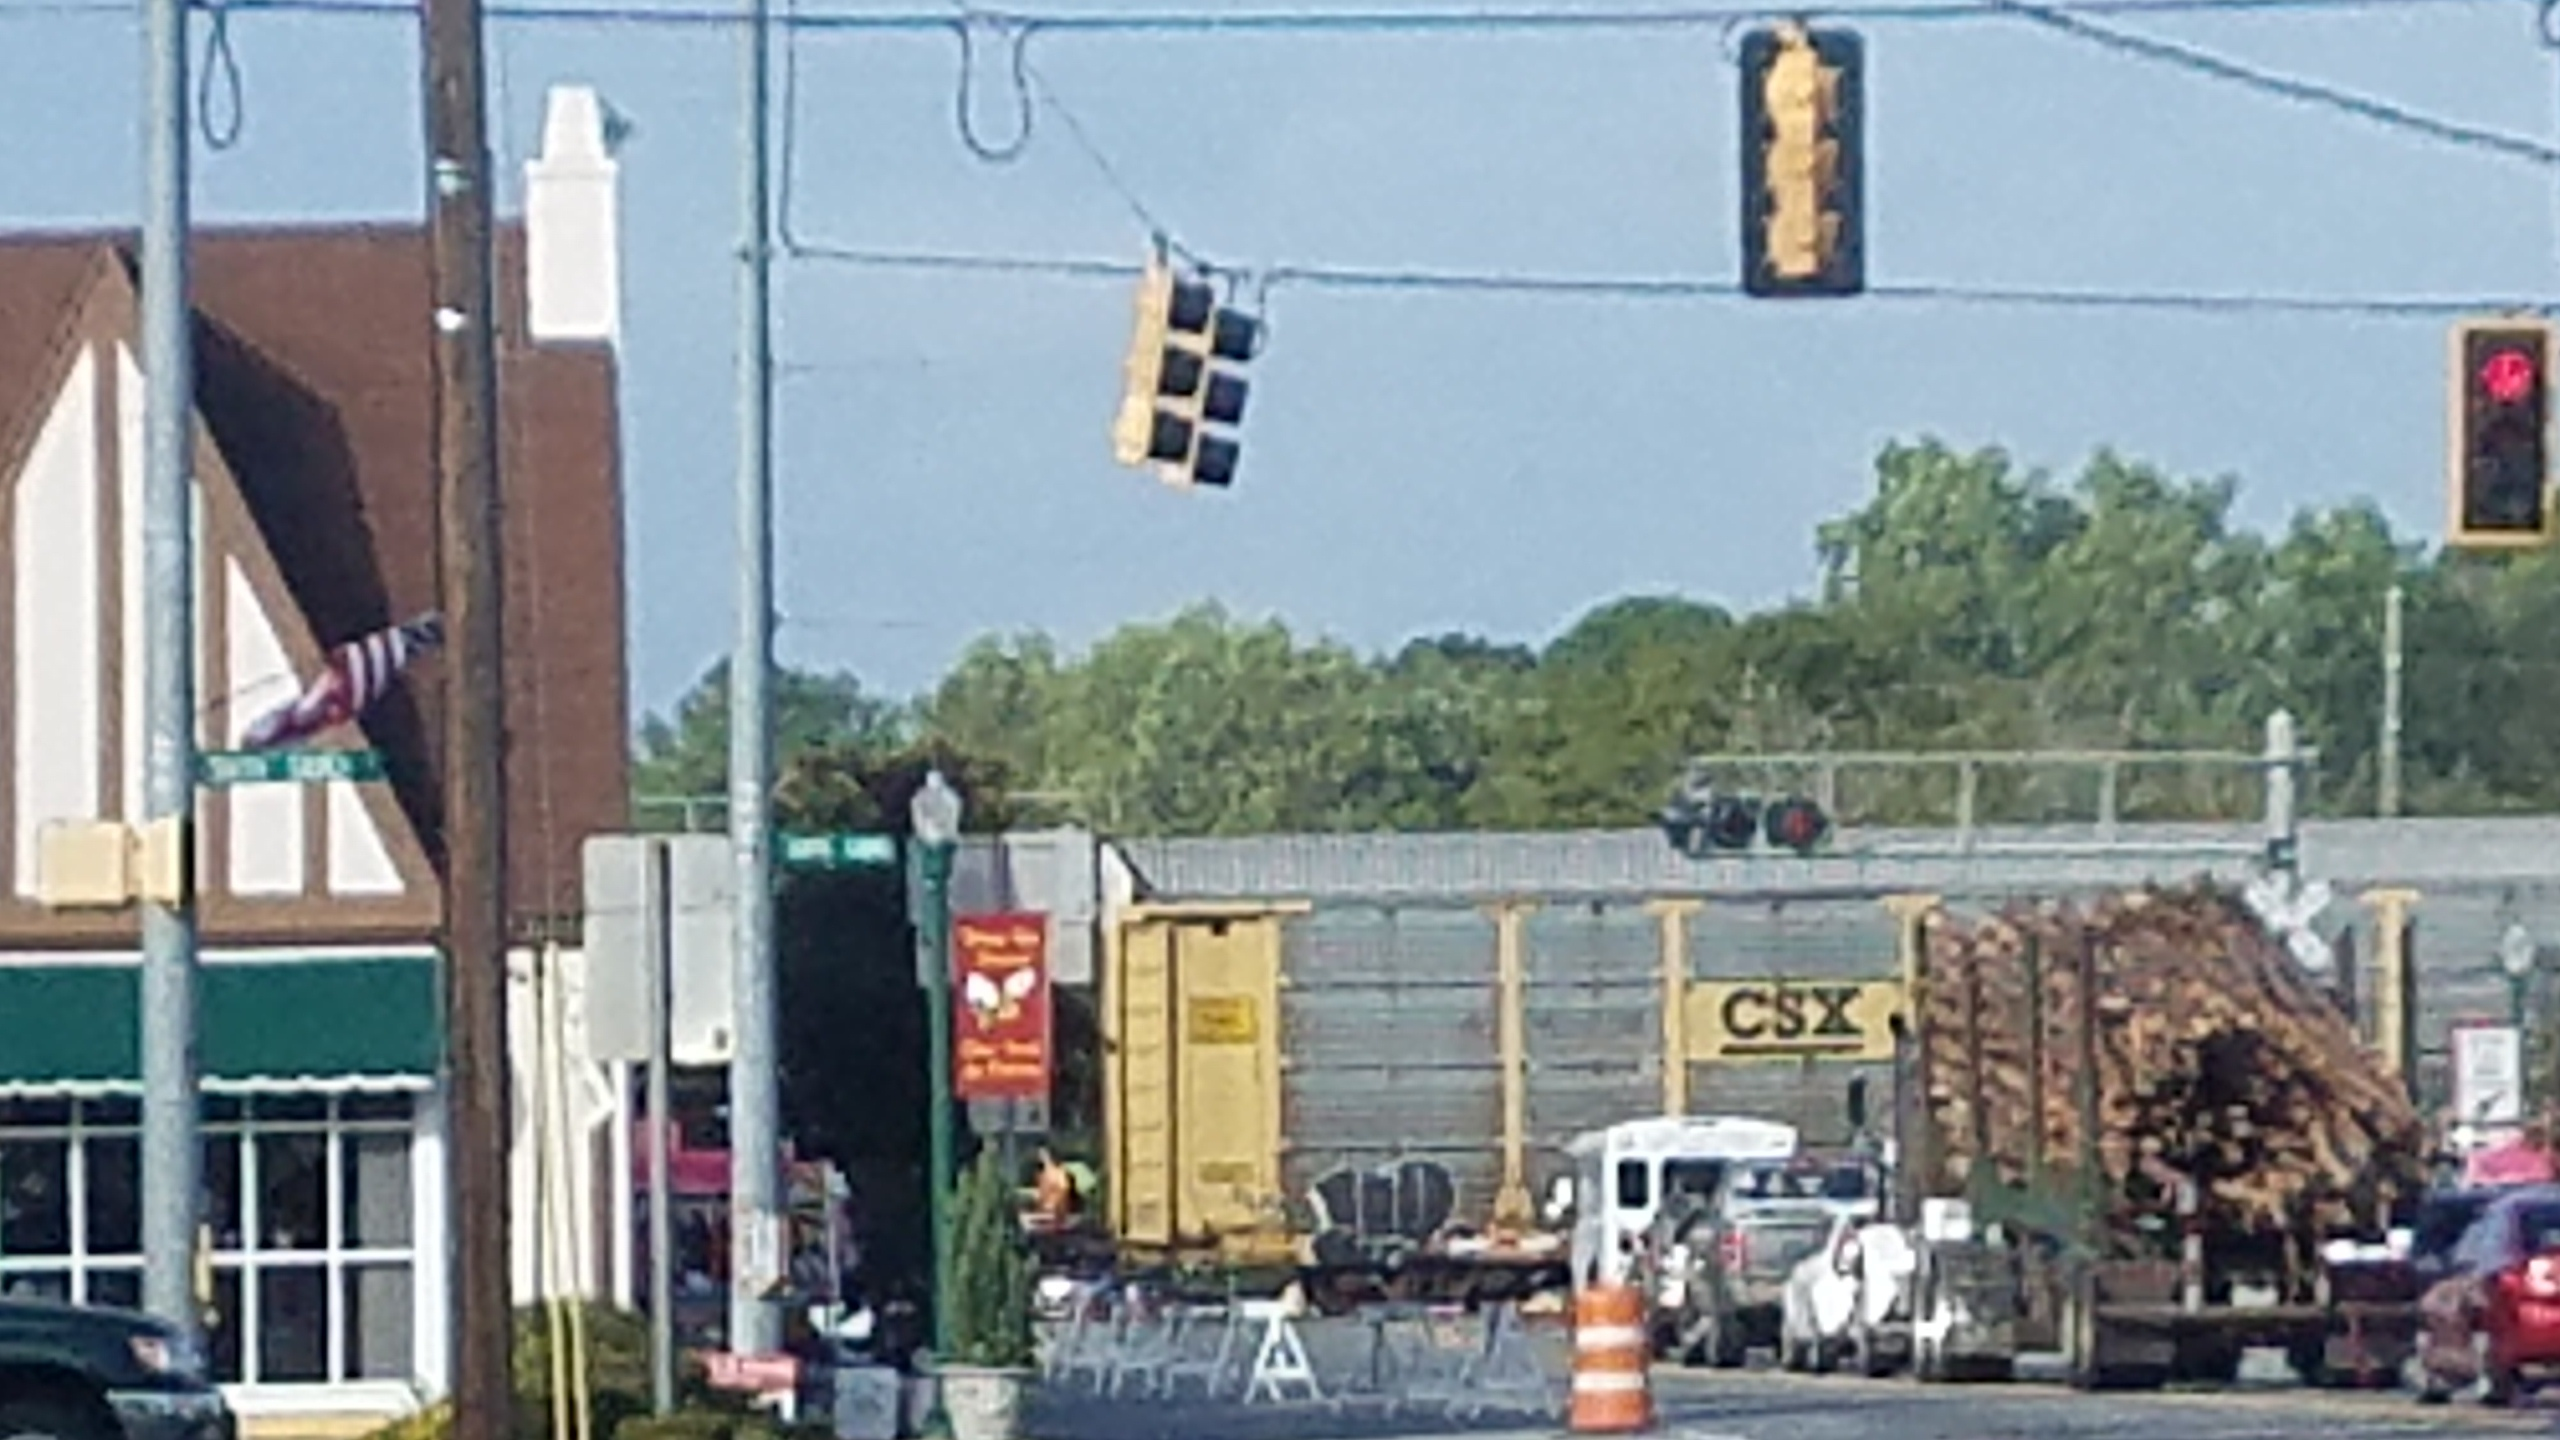 2560x1440 Train, log truck, traffic light, and Hahira Honeybee, Railroad, in Hahira Honeybee Saturday, by John S. Quarterman, for WWALS.net, 7 October 2017